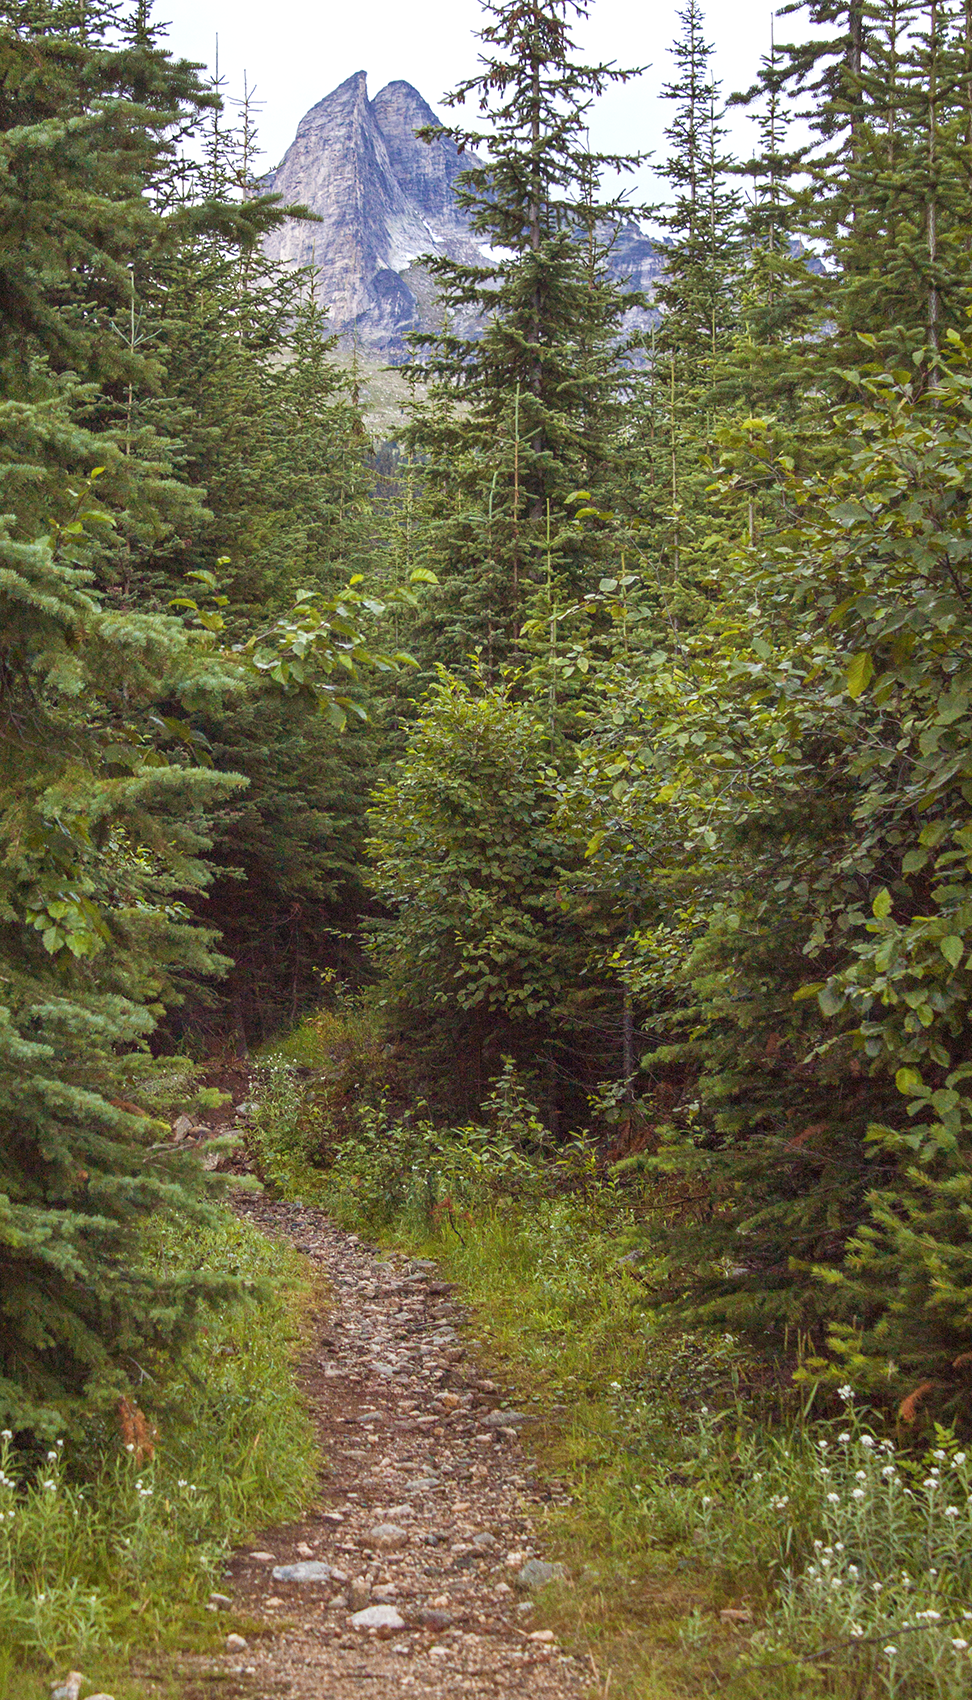 A path leads into a dense forest, towards a rocky mountain.